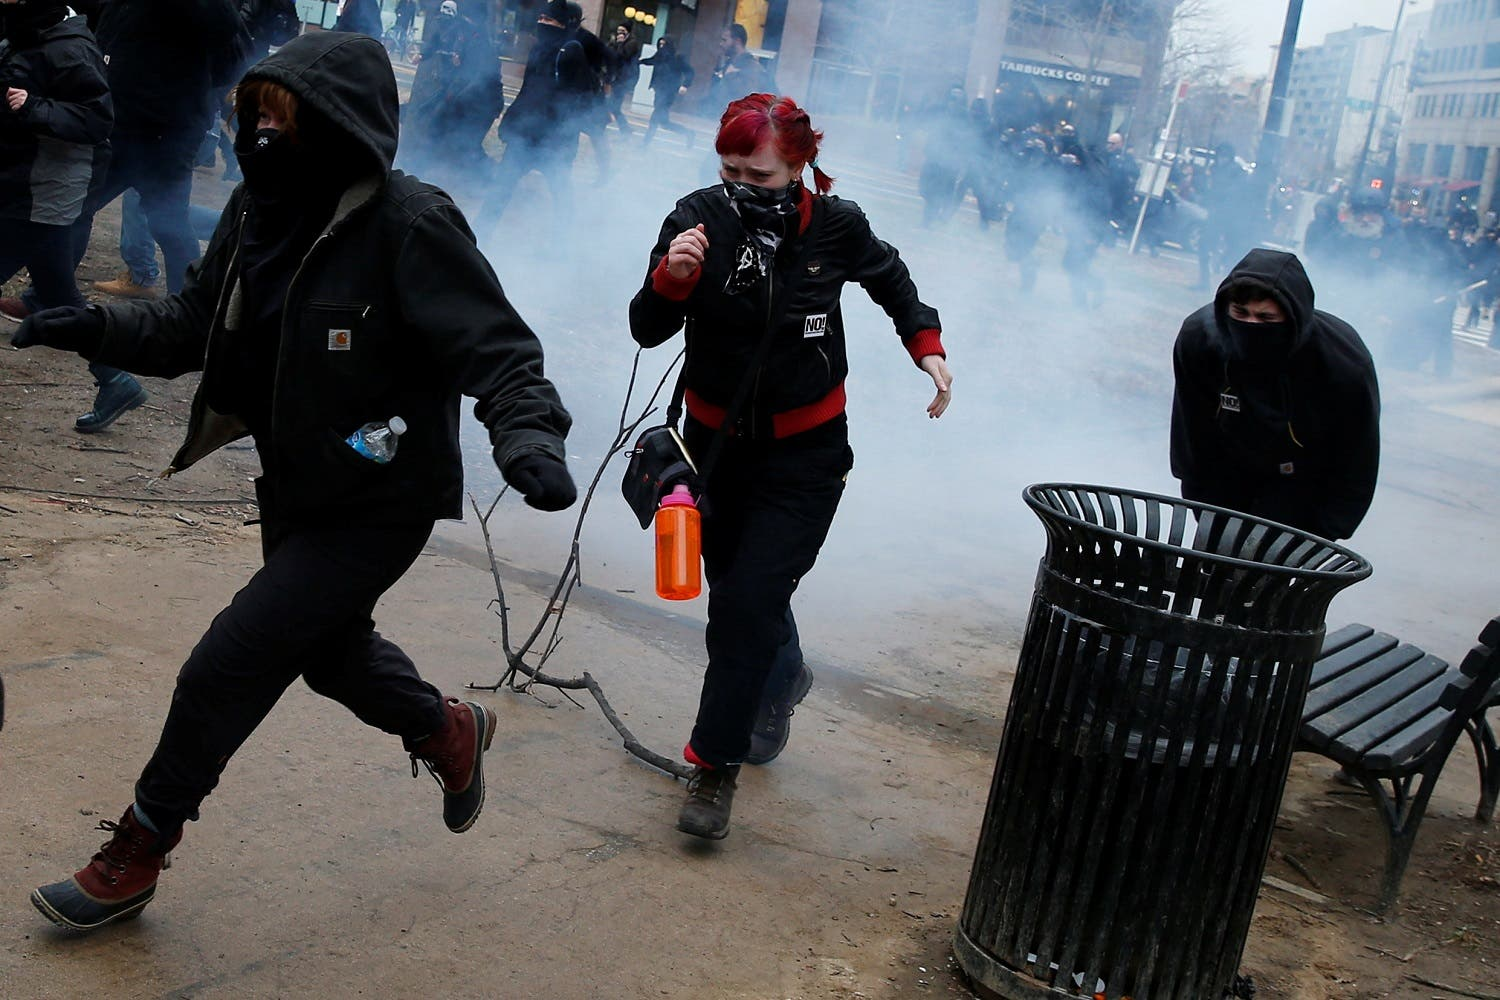 Activists run after being hit by a stun grenade while protesting against Trump on the sidelines of the inauguration in Washington. (Reuters)